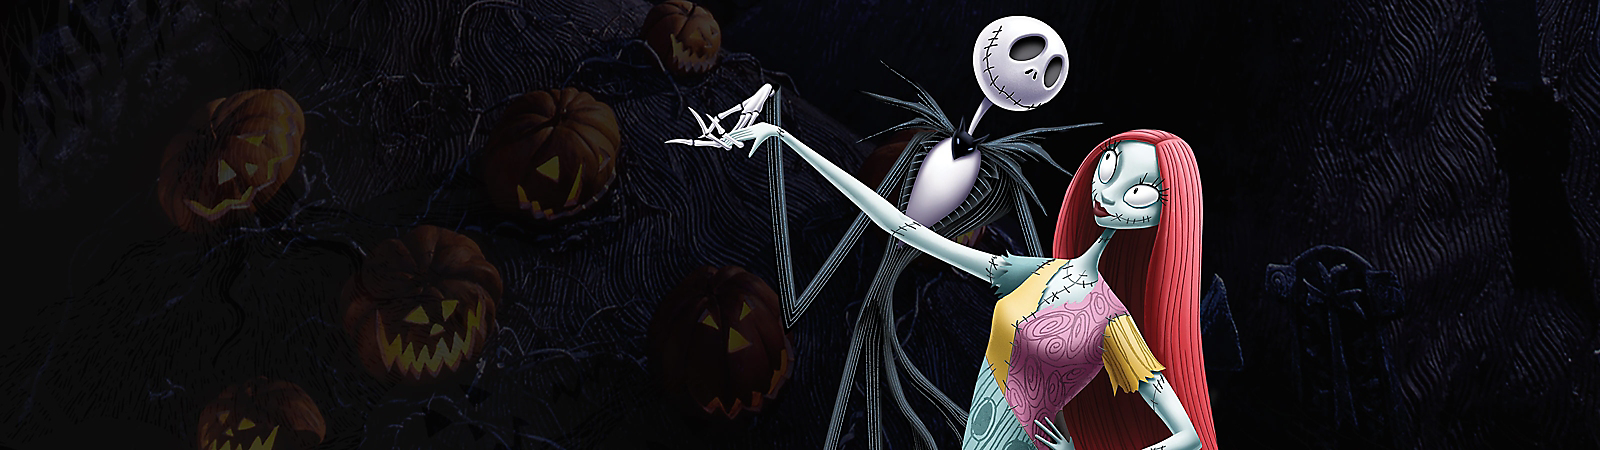 Background image of Tim Burton's The Nightmare Before Christmas